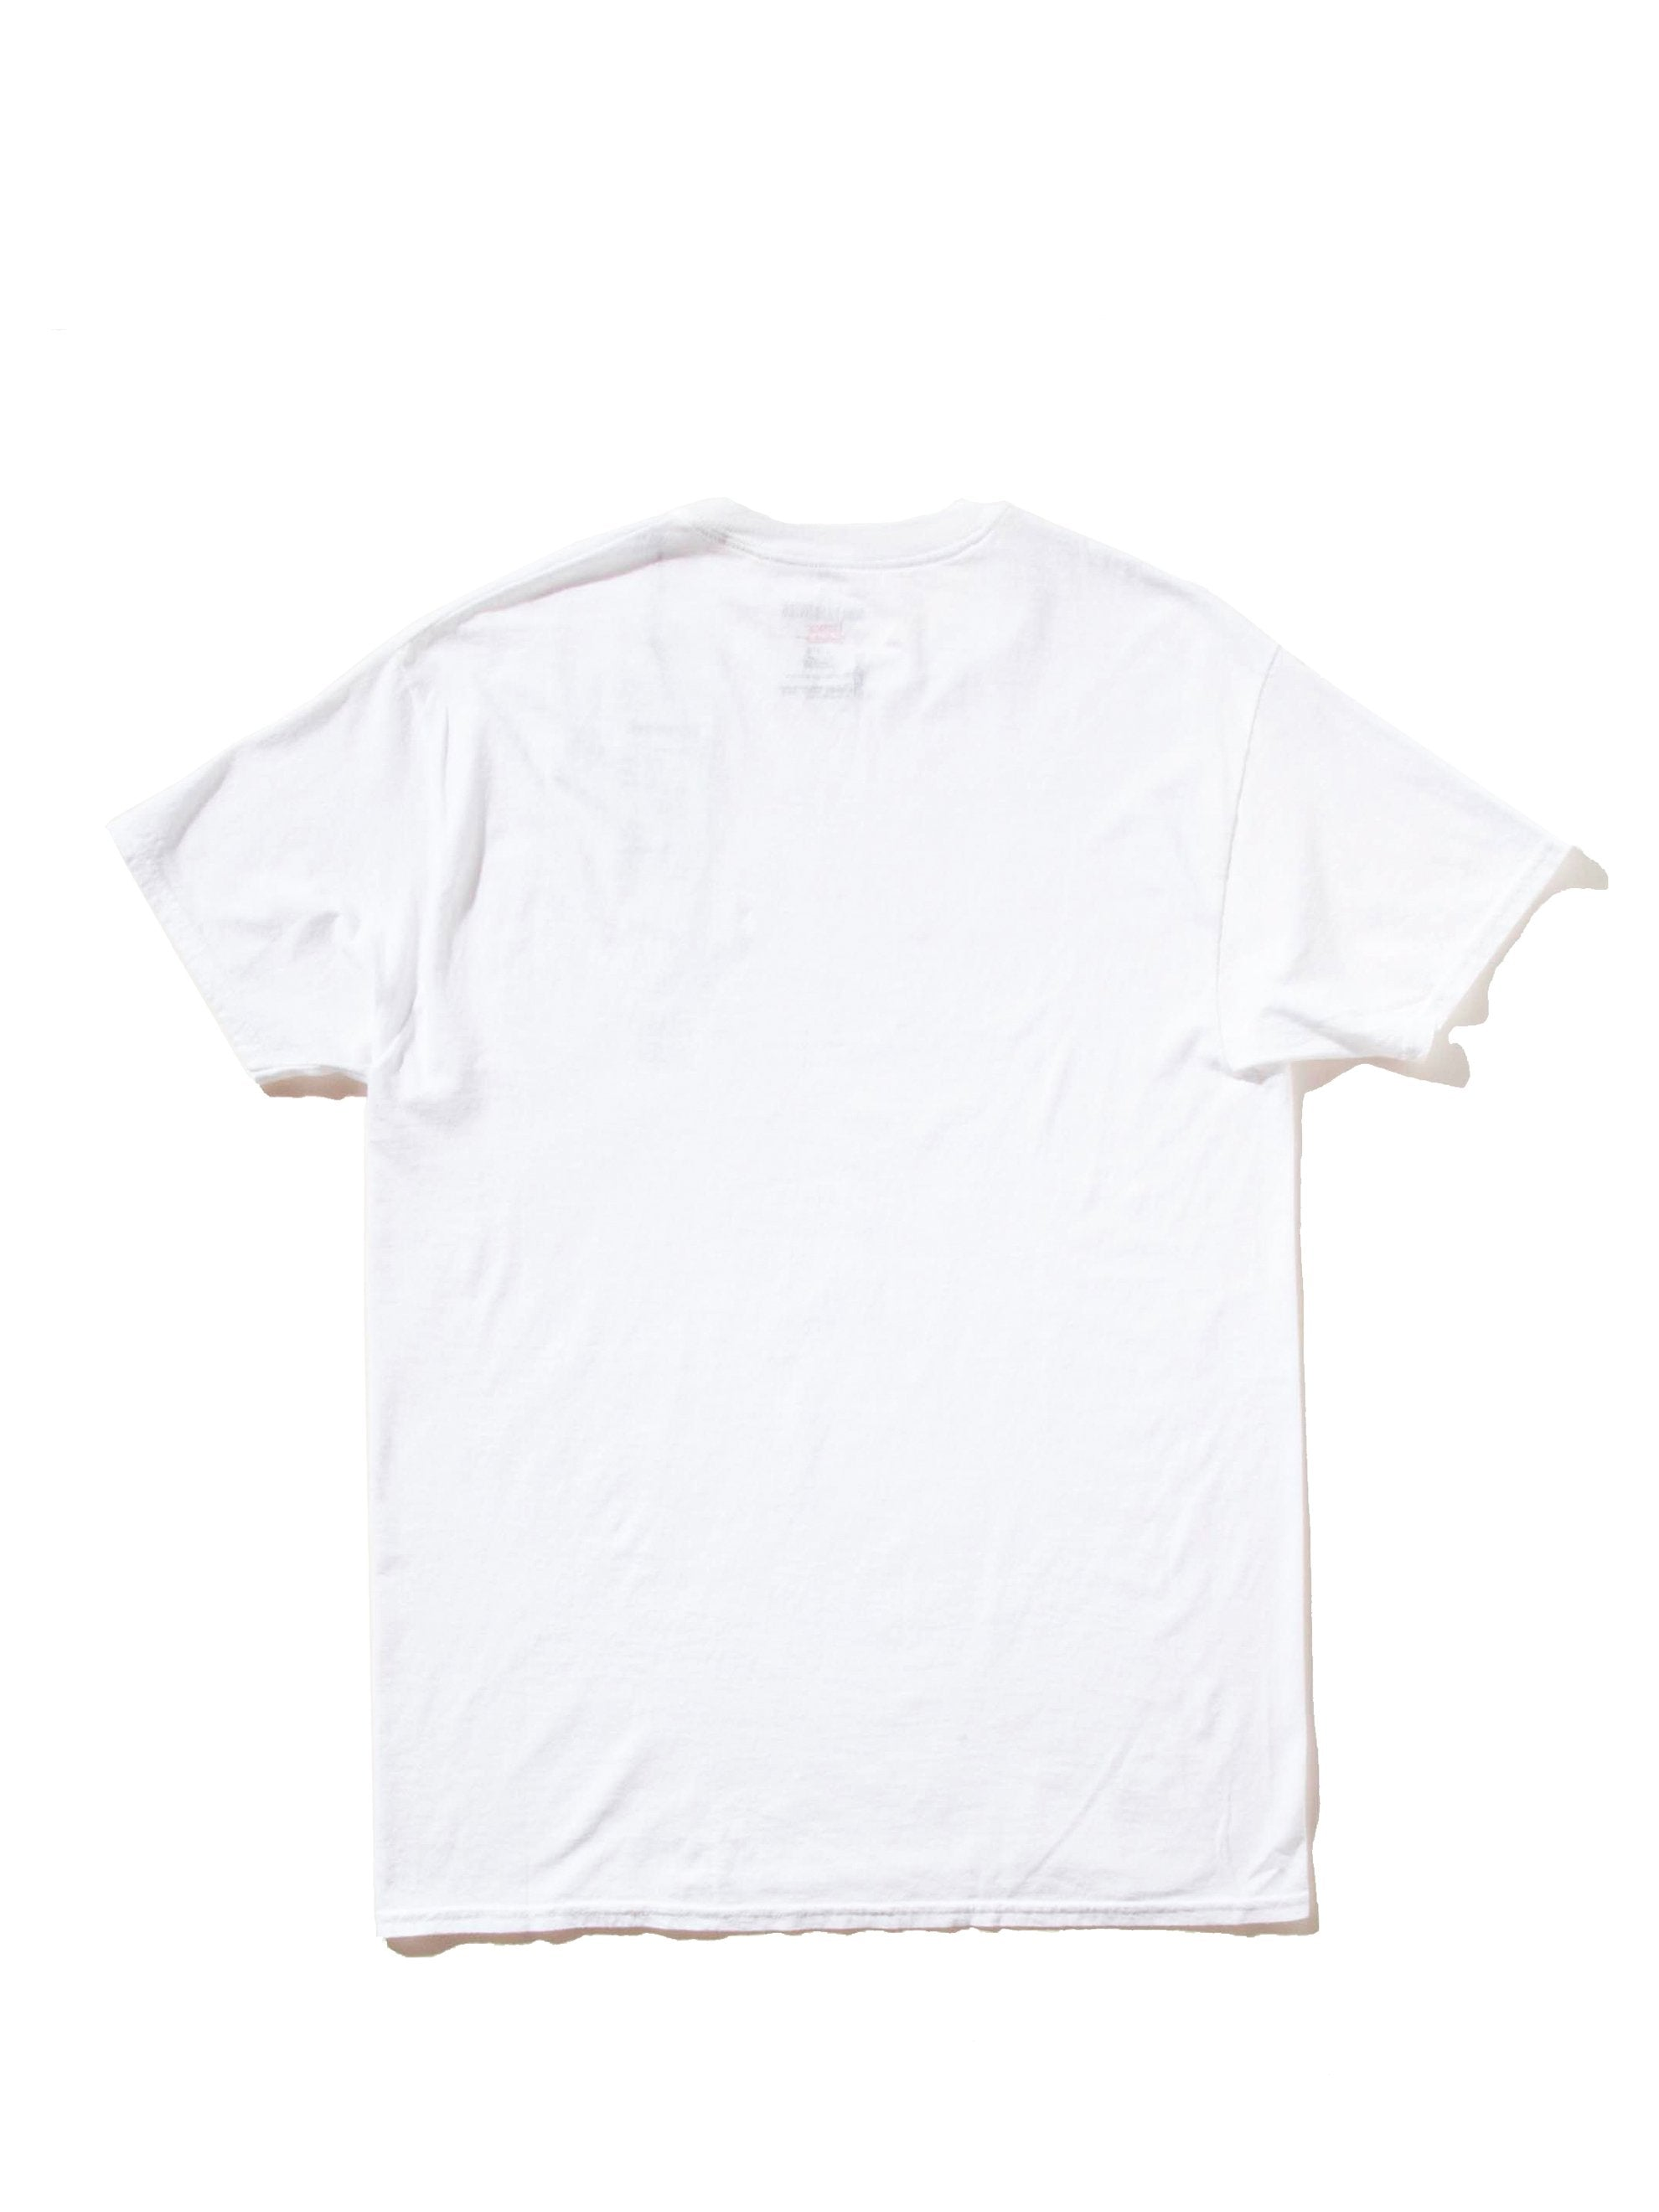 White Souvenior Crew Neck T-Shirt (Type 6) 6